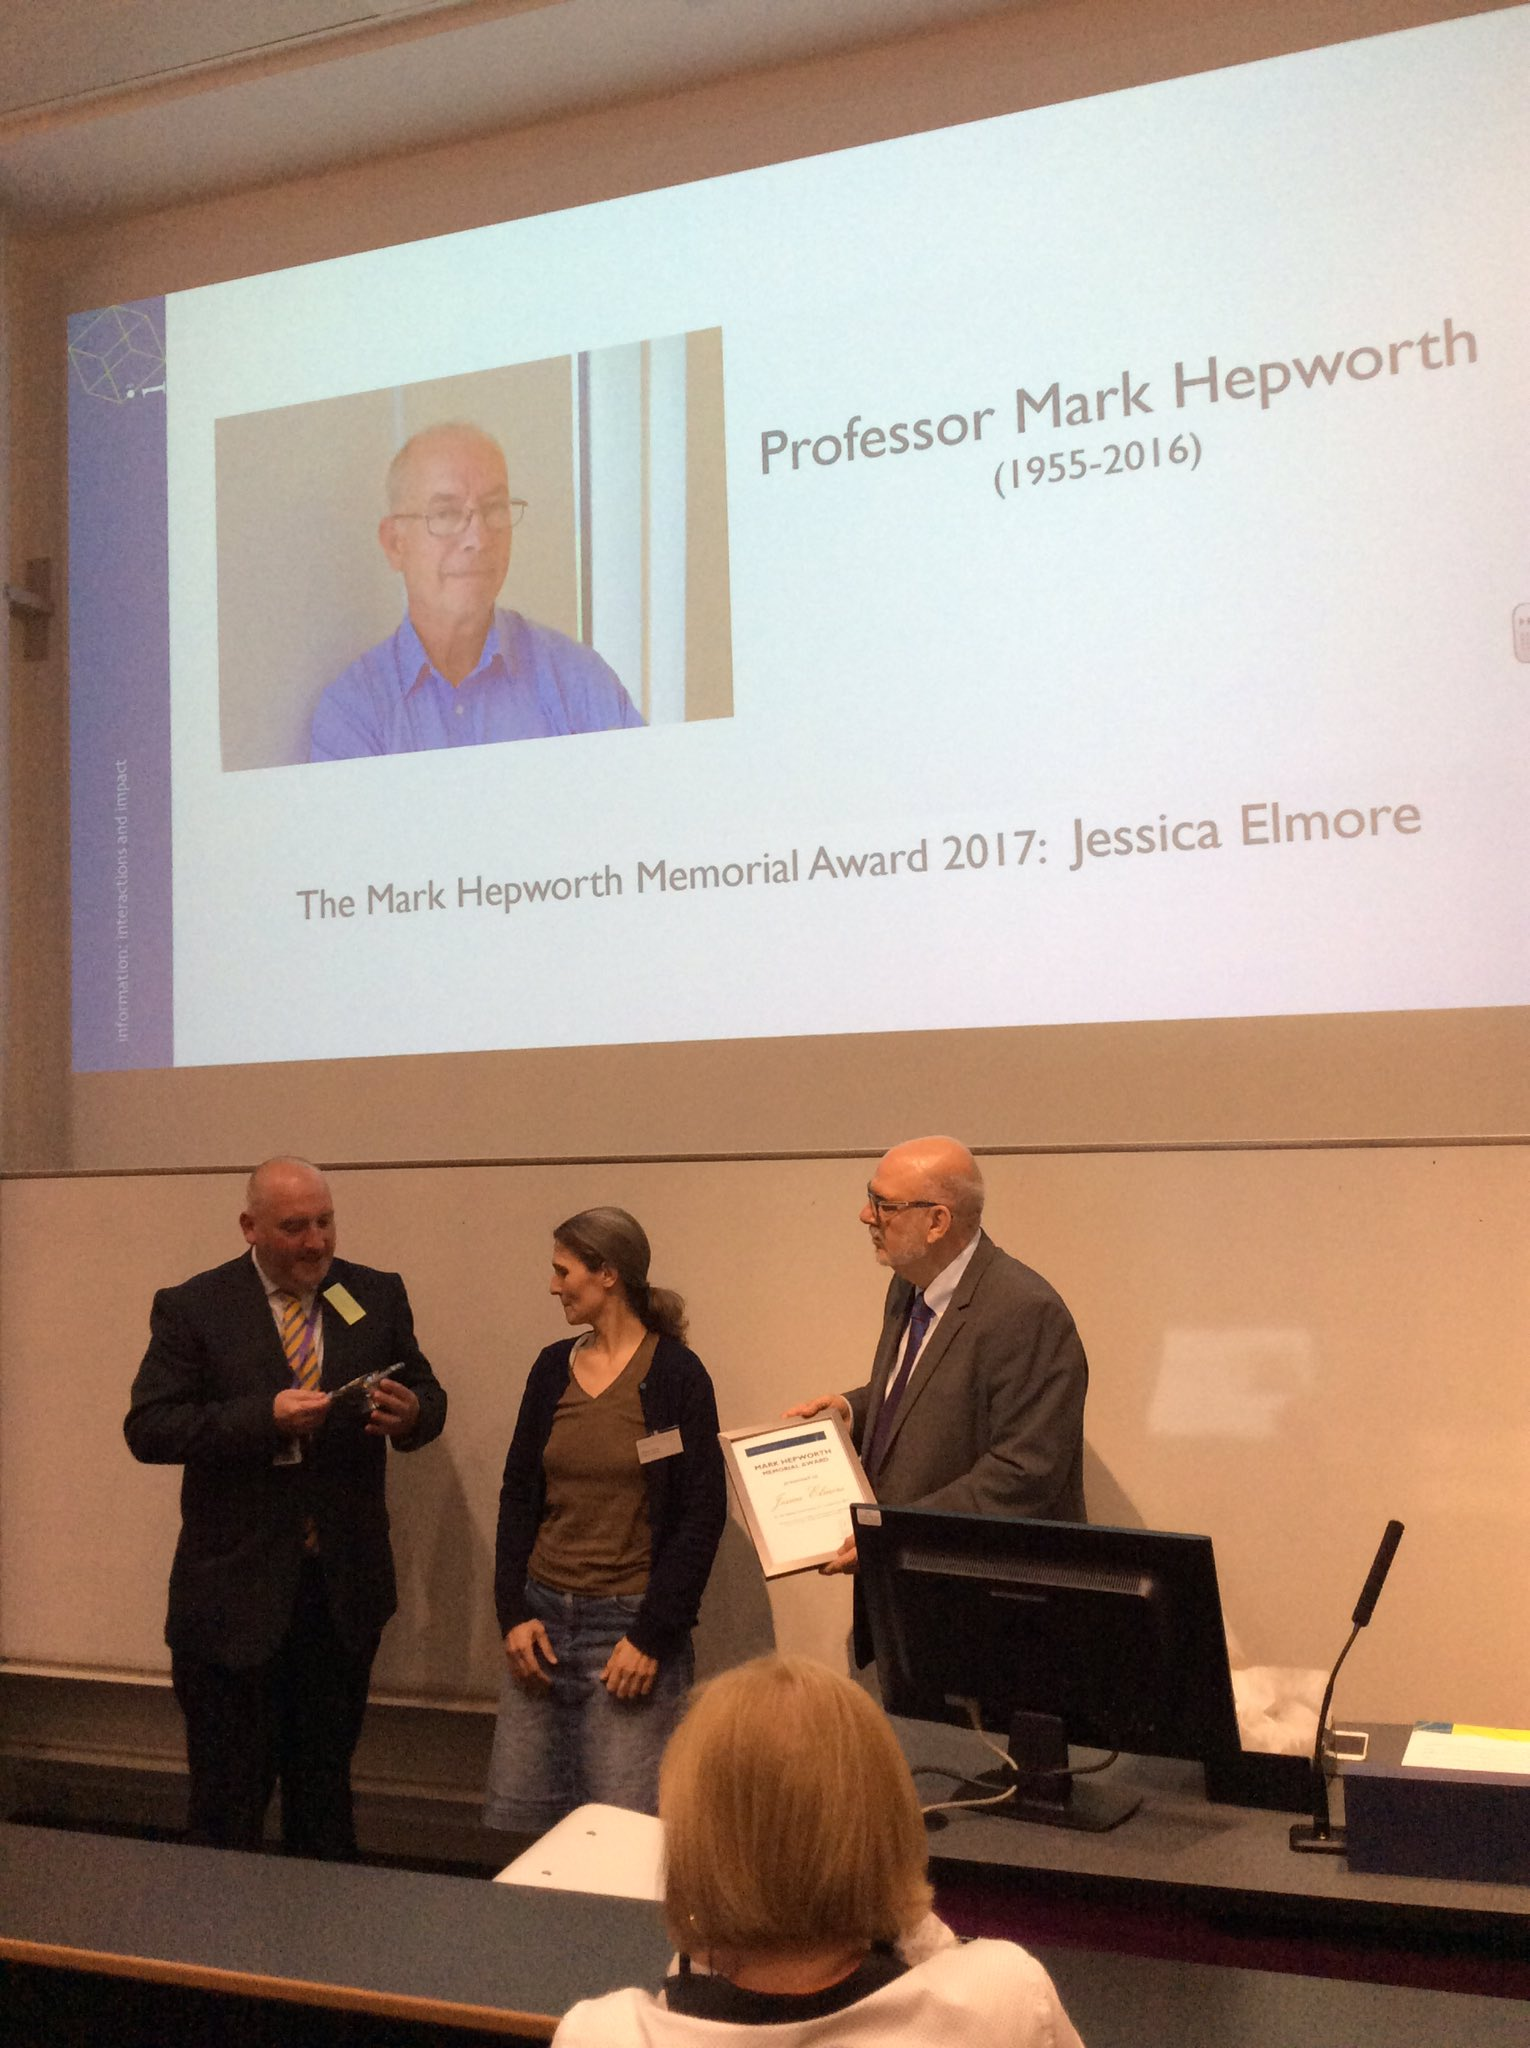 Jessica Elmore receives the Mark Hepworth Memorial Award 2017 from @BanffshireProf and Prof. Graham Matthews #i3rgu https://t.co/AZxQmQnHED